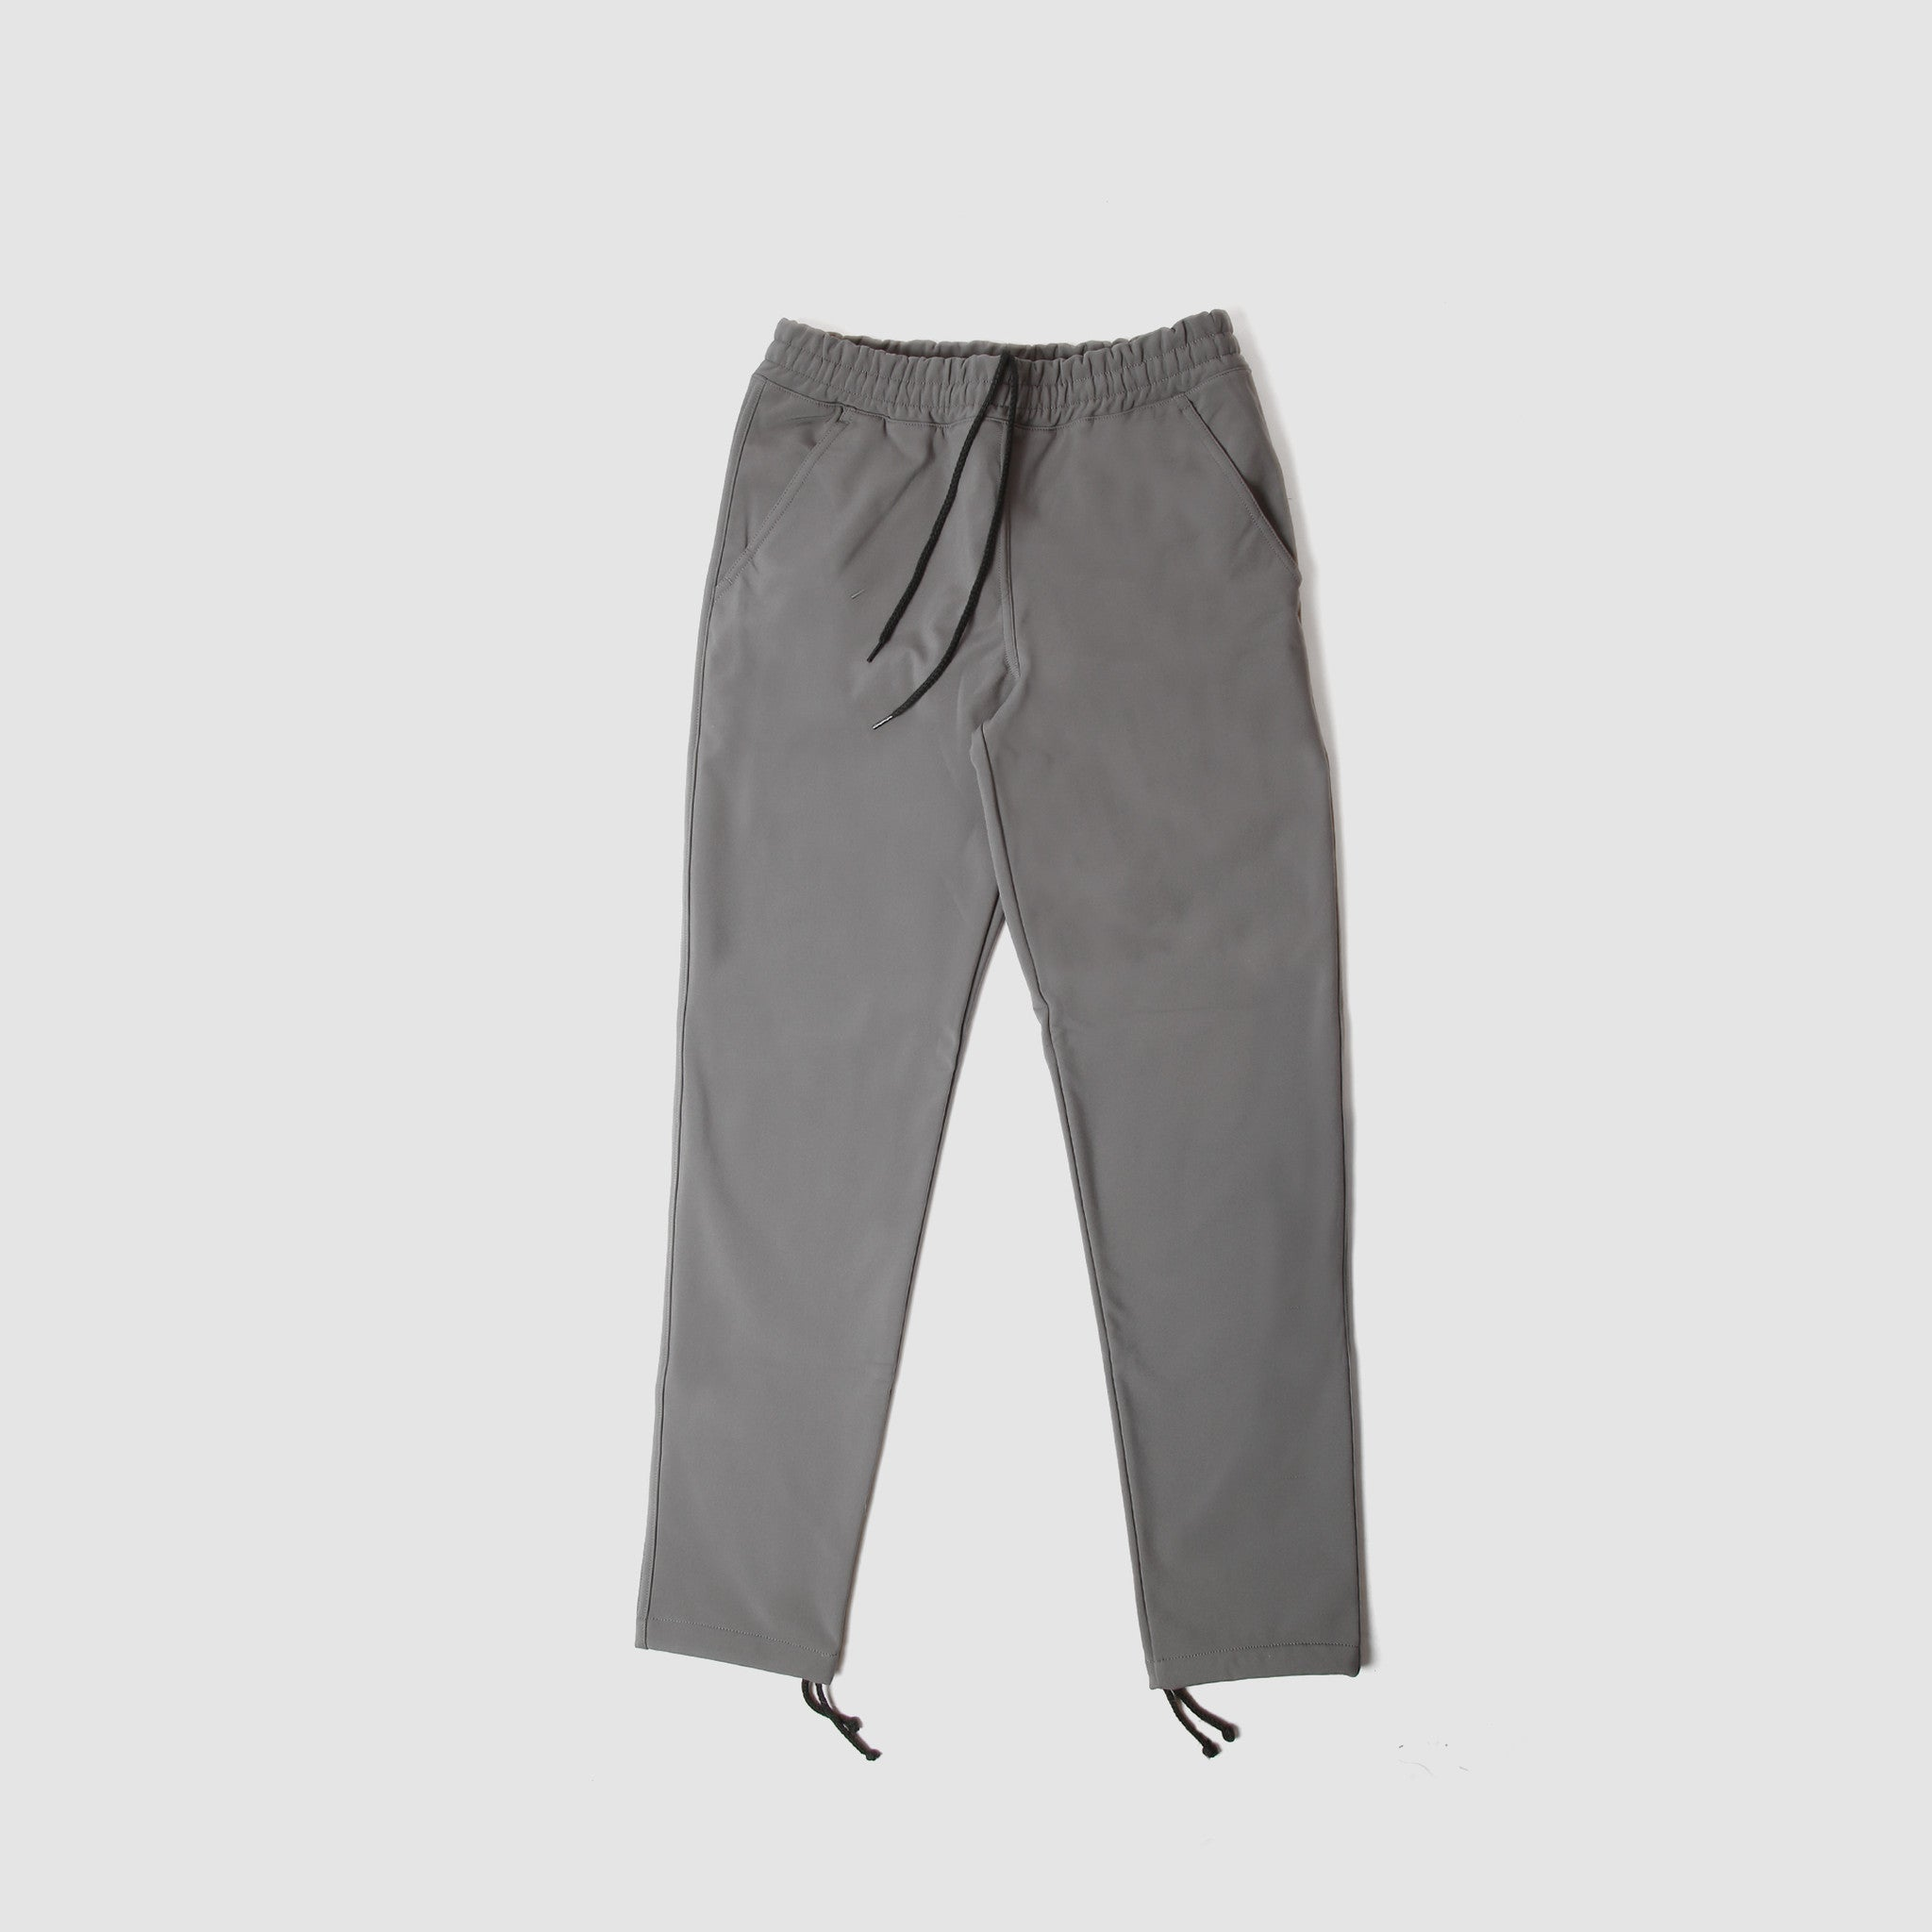 Waterproof 3-Way Pant - Charcoal